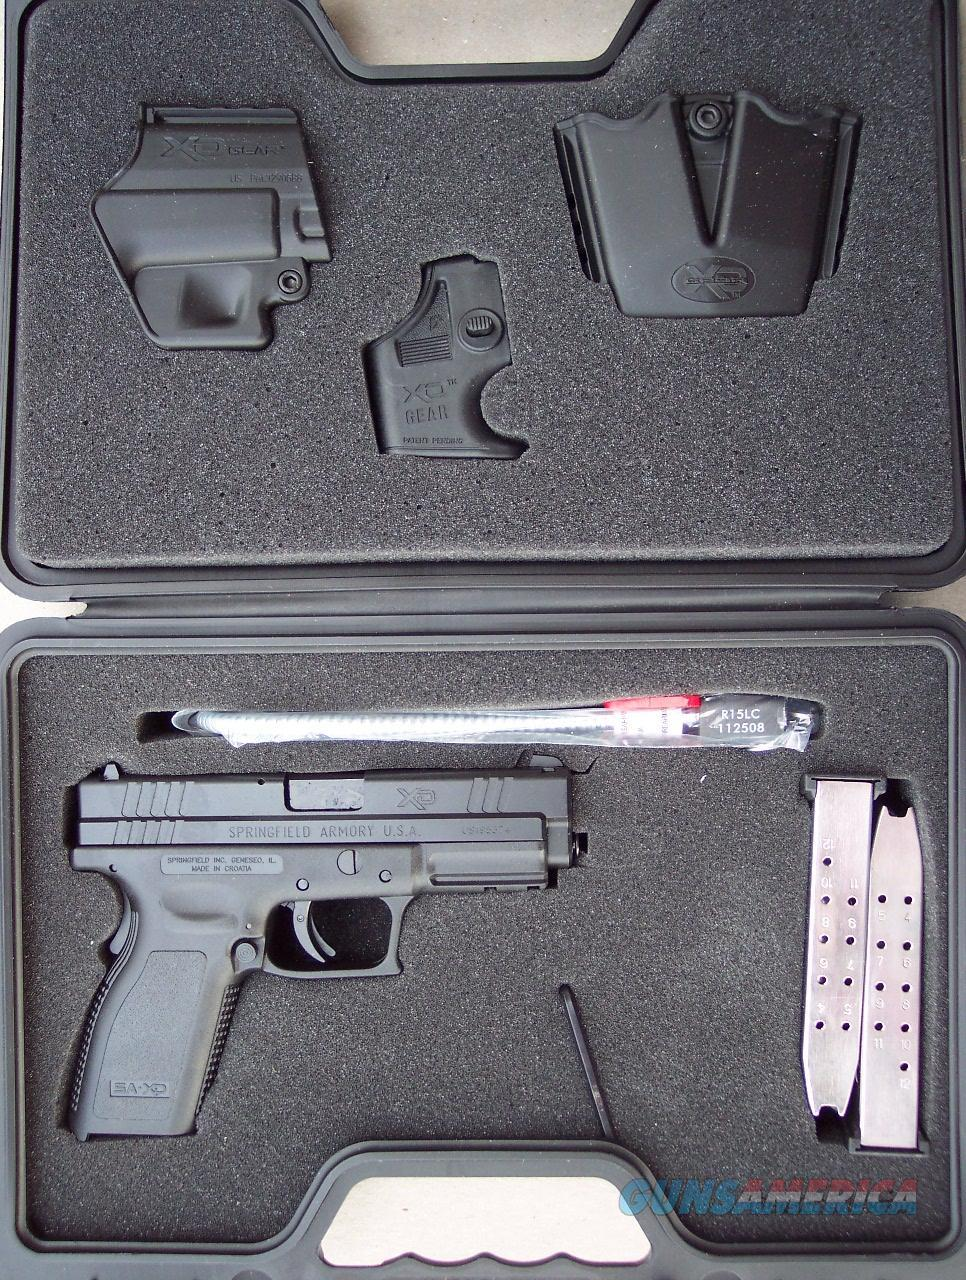 NIB Springfield XD-40, 40S&W with Night Sights  Guns > Pistols > Springfield Armory Pistols > XD (eXtreme Duty)